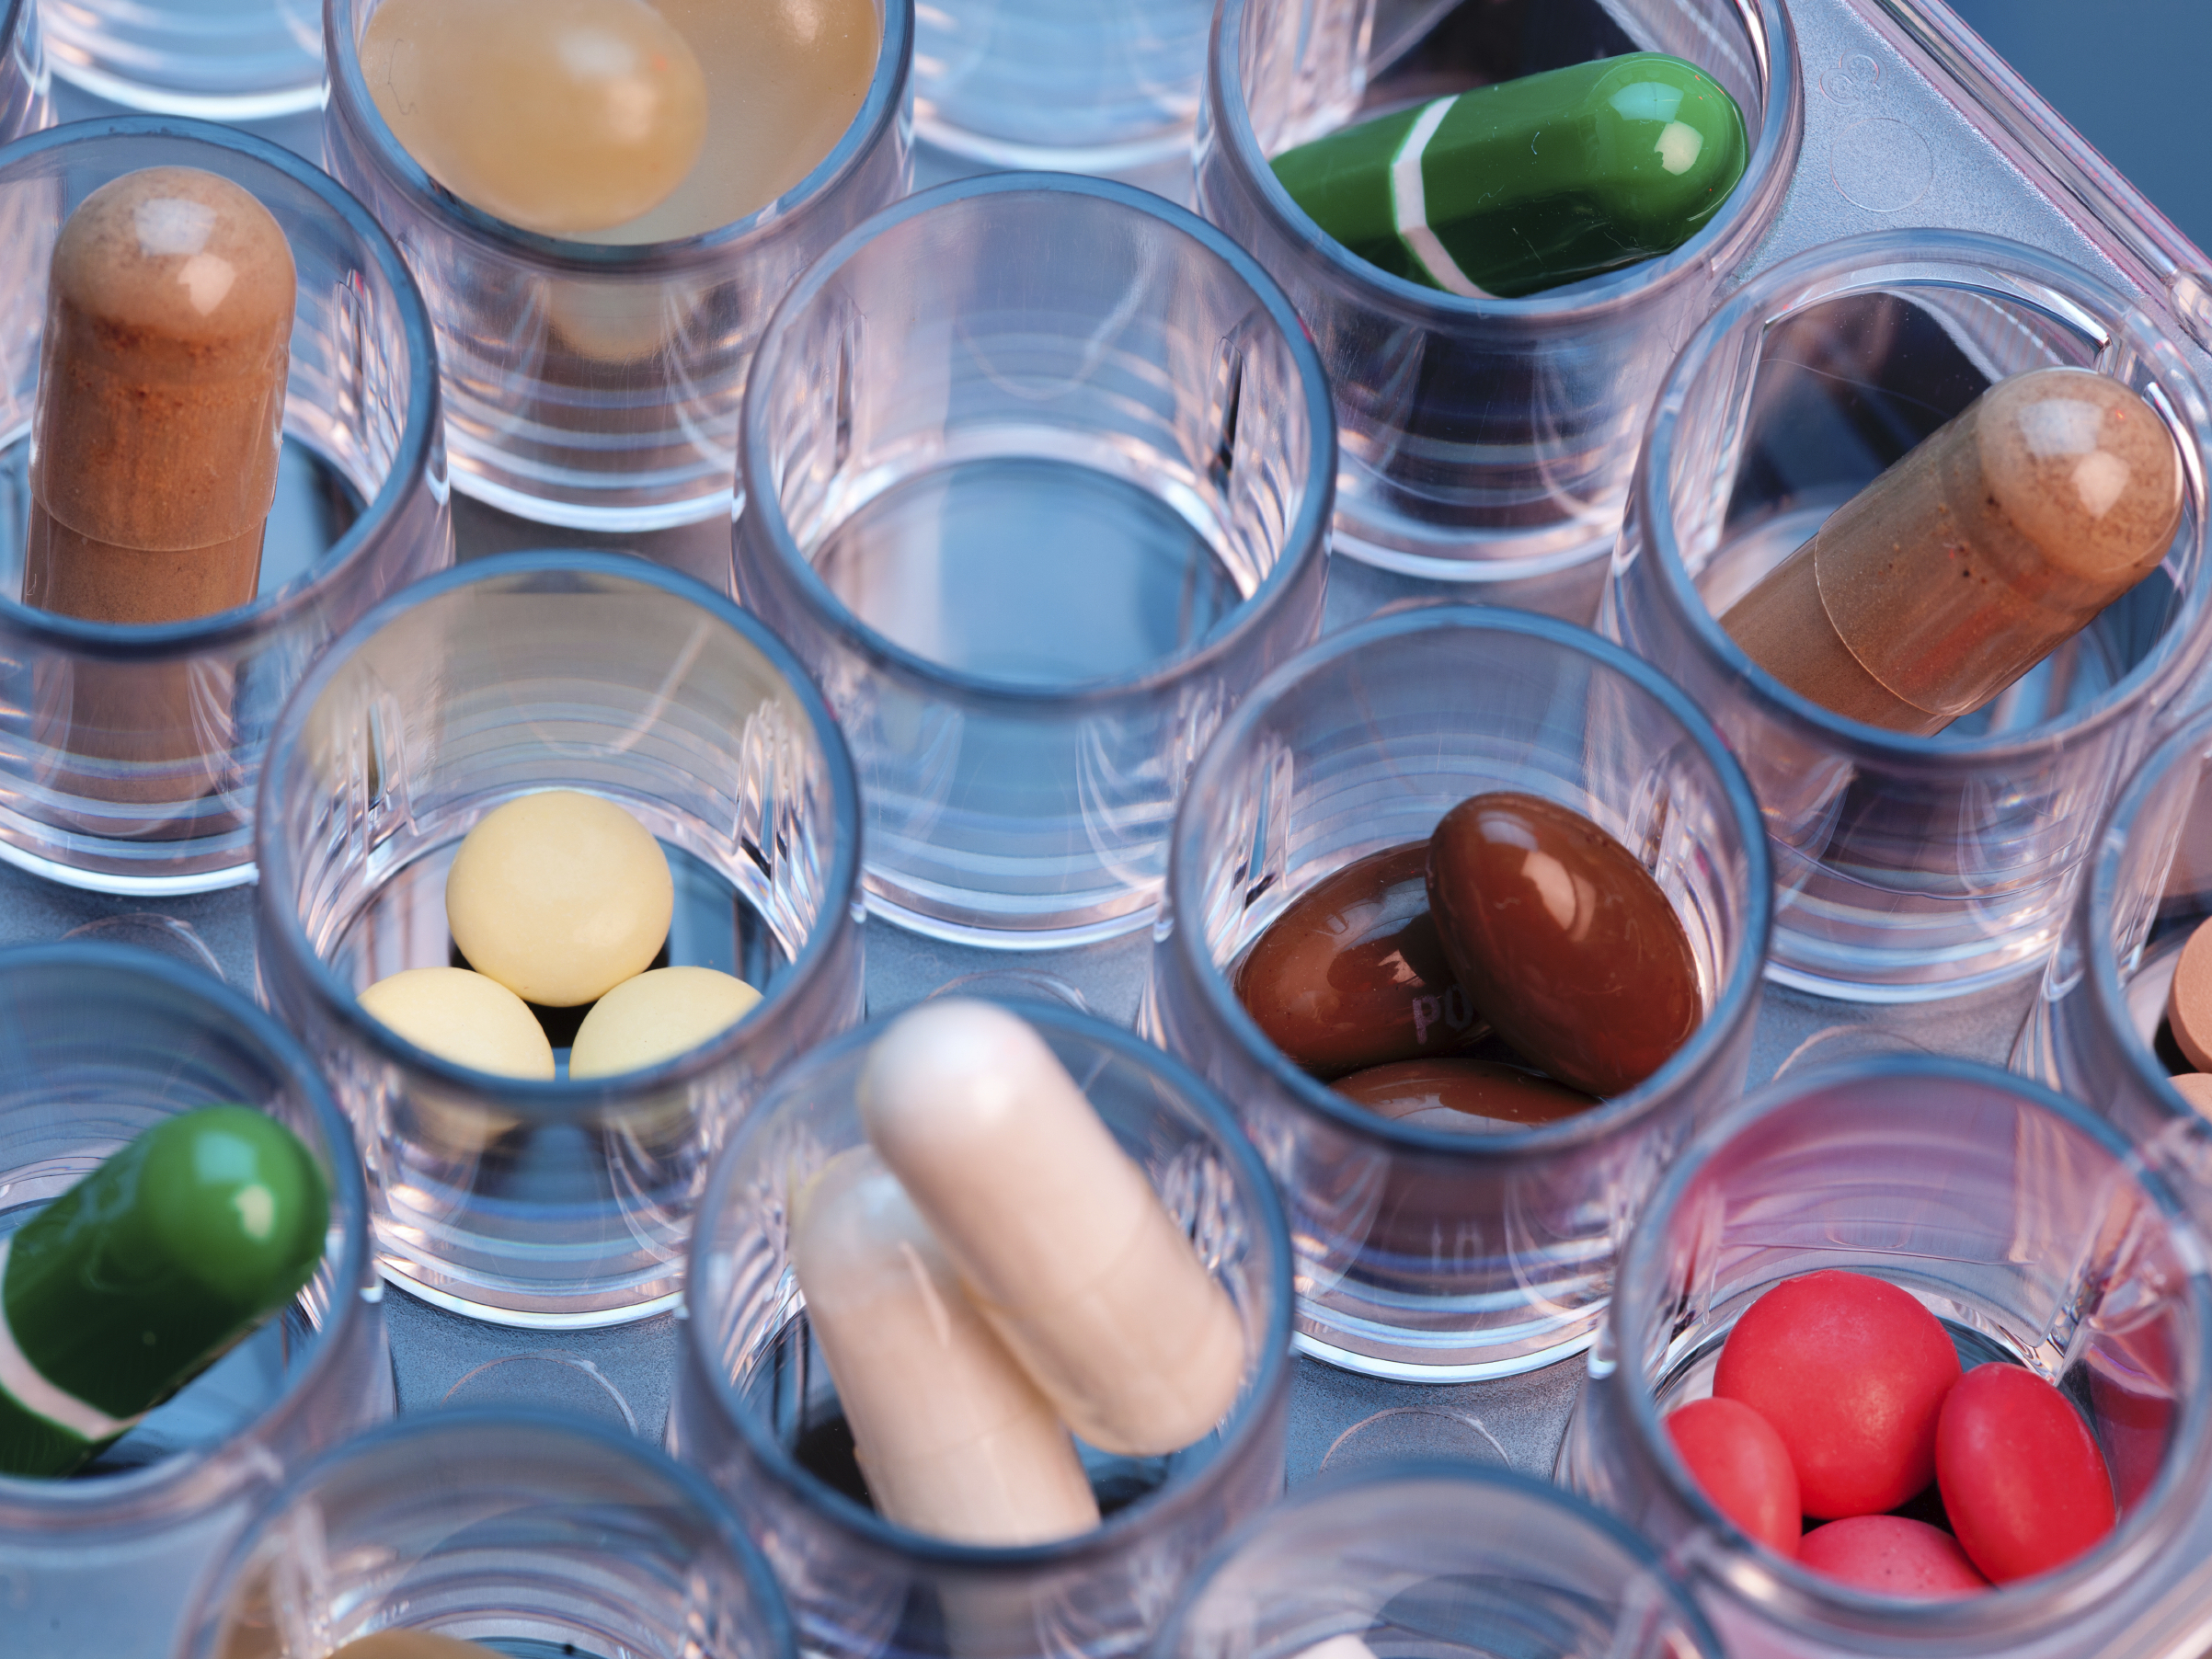 GAO Report Urges Fewer Antipsychotic Drugs For Dementia Patients